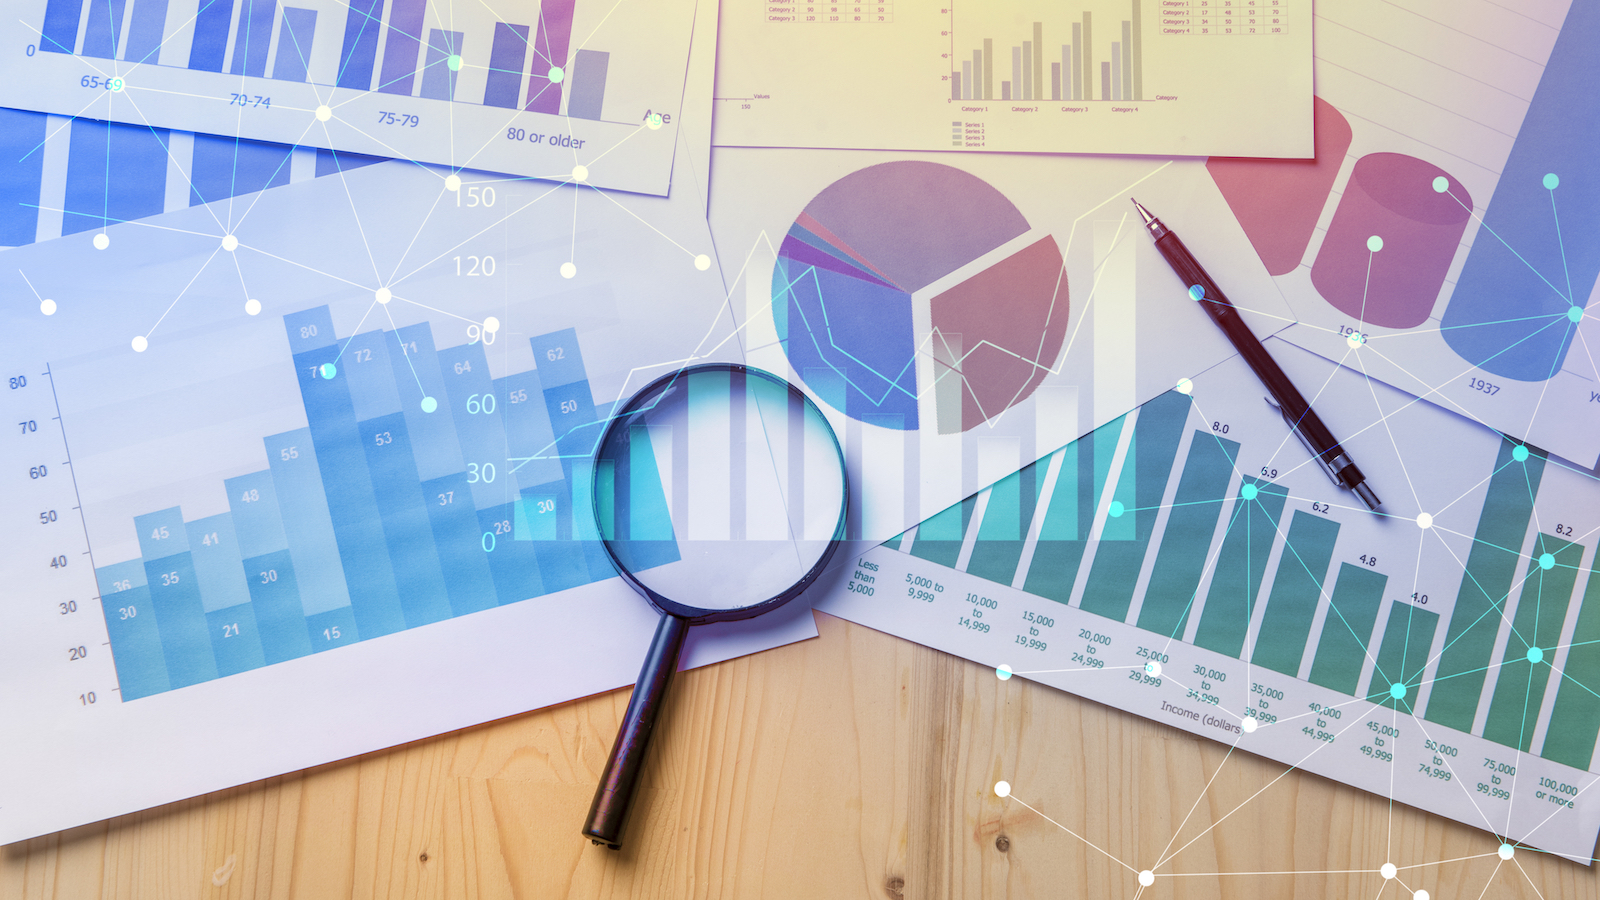 Magnifying Glass | B2B Ecommerce: 9 Tips To Help Execute Your Strategy